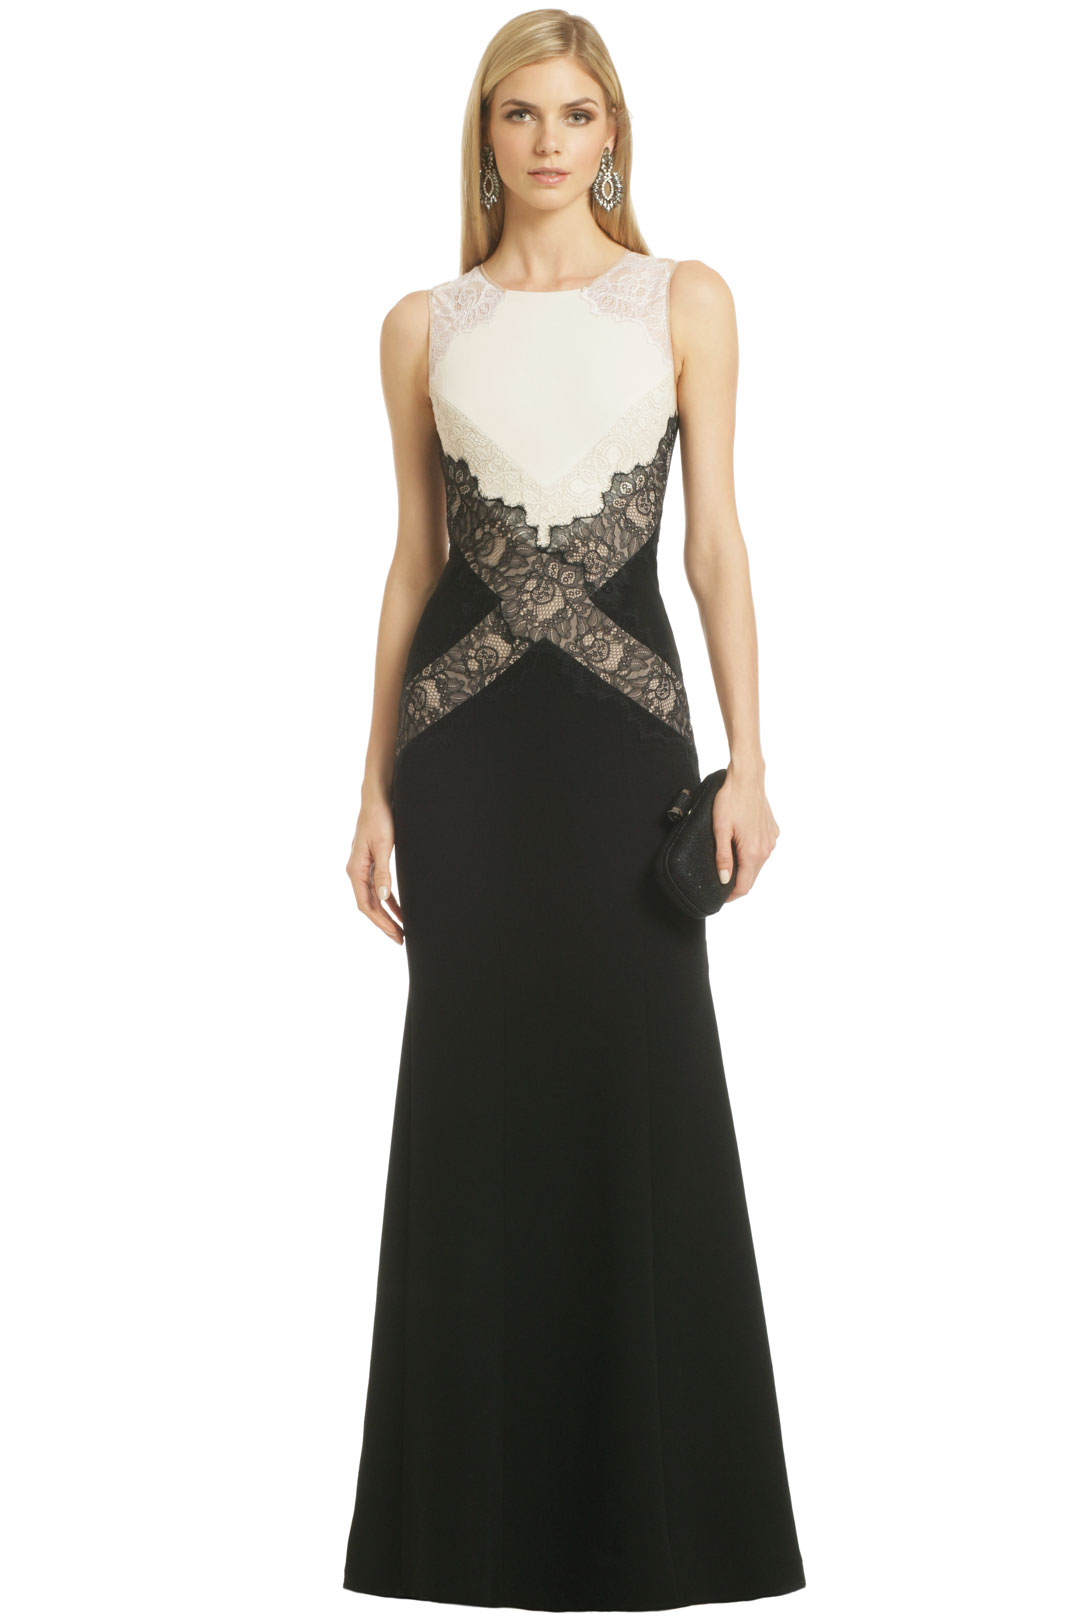 Locket of Lace Gown by BCBGMAXAZRIA at $125 - Page 2 | Rent The Runway